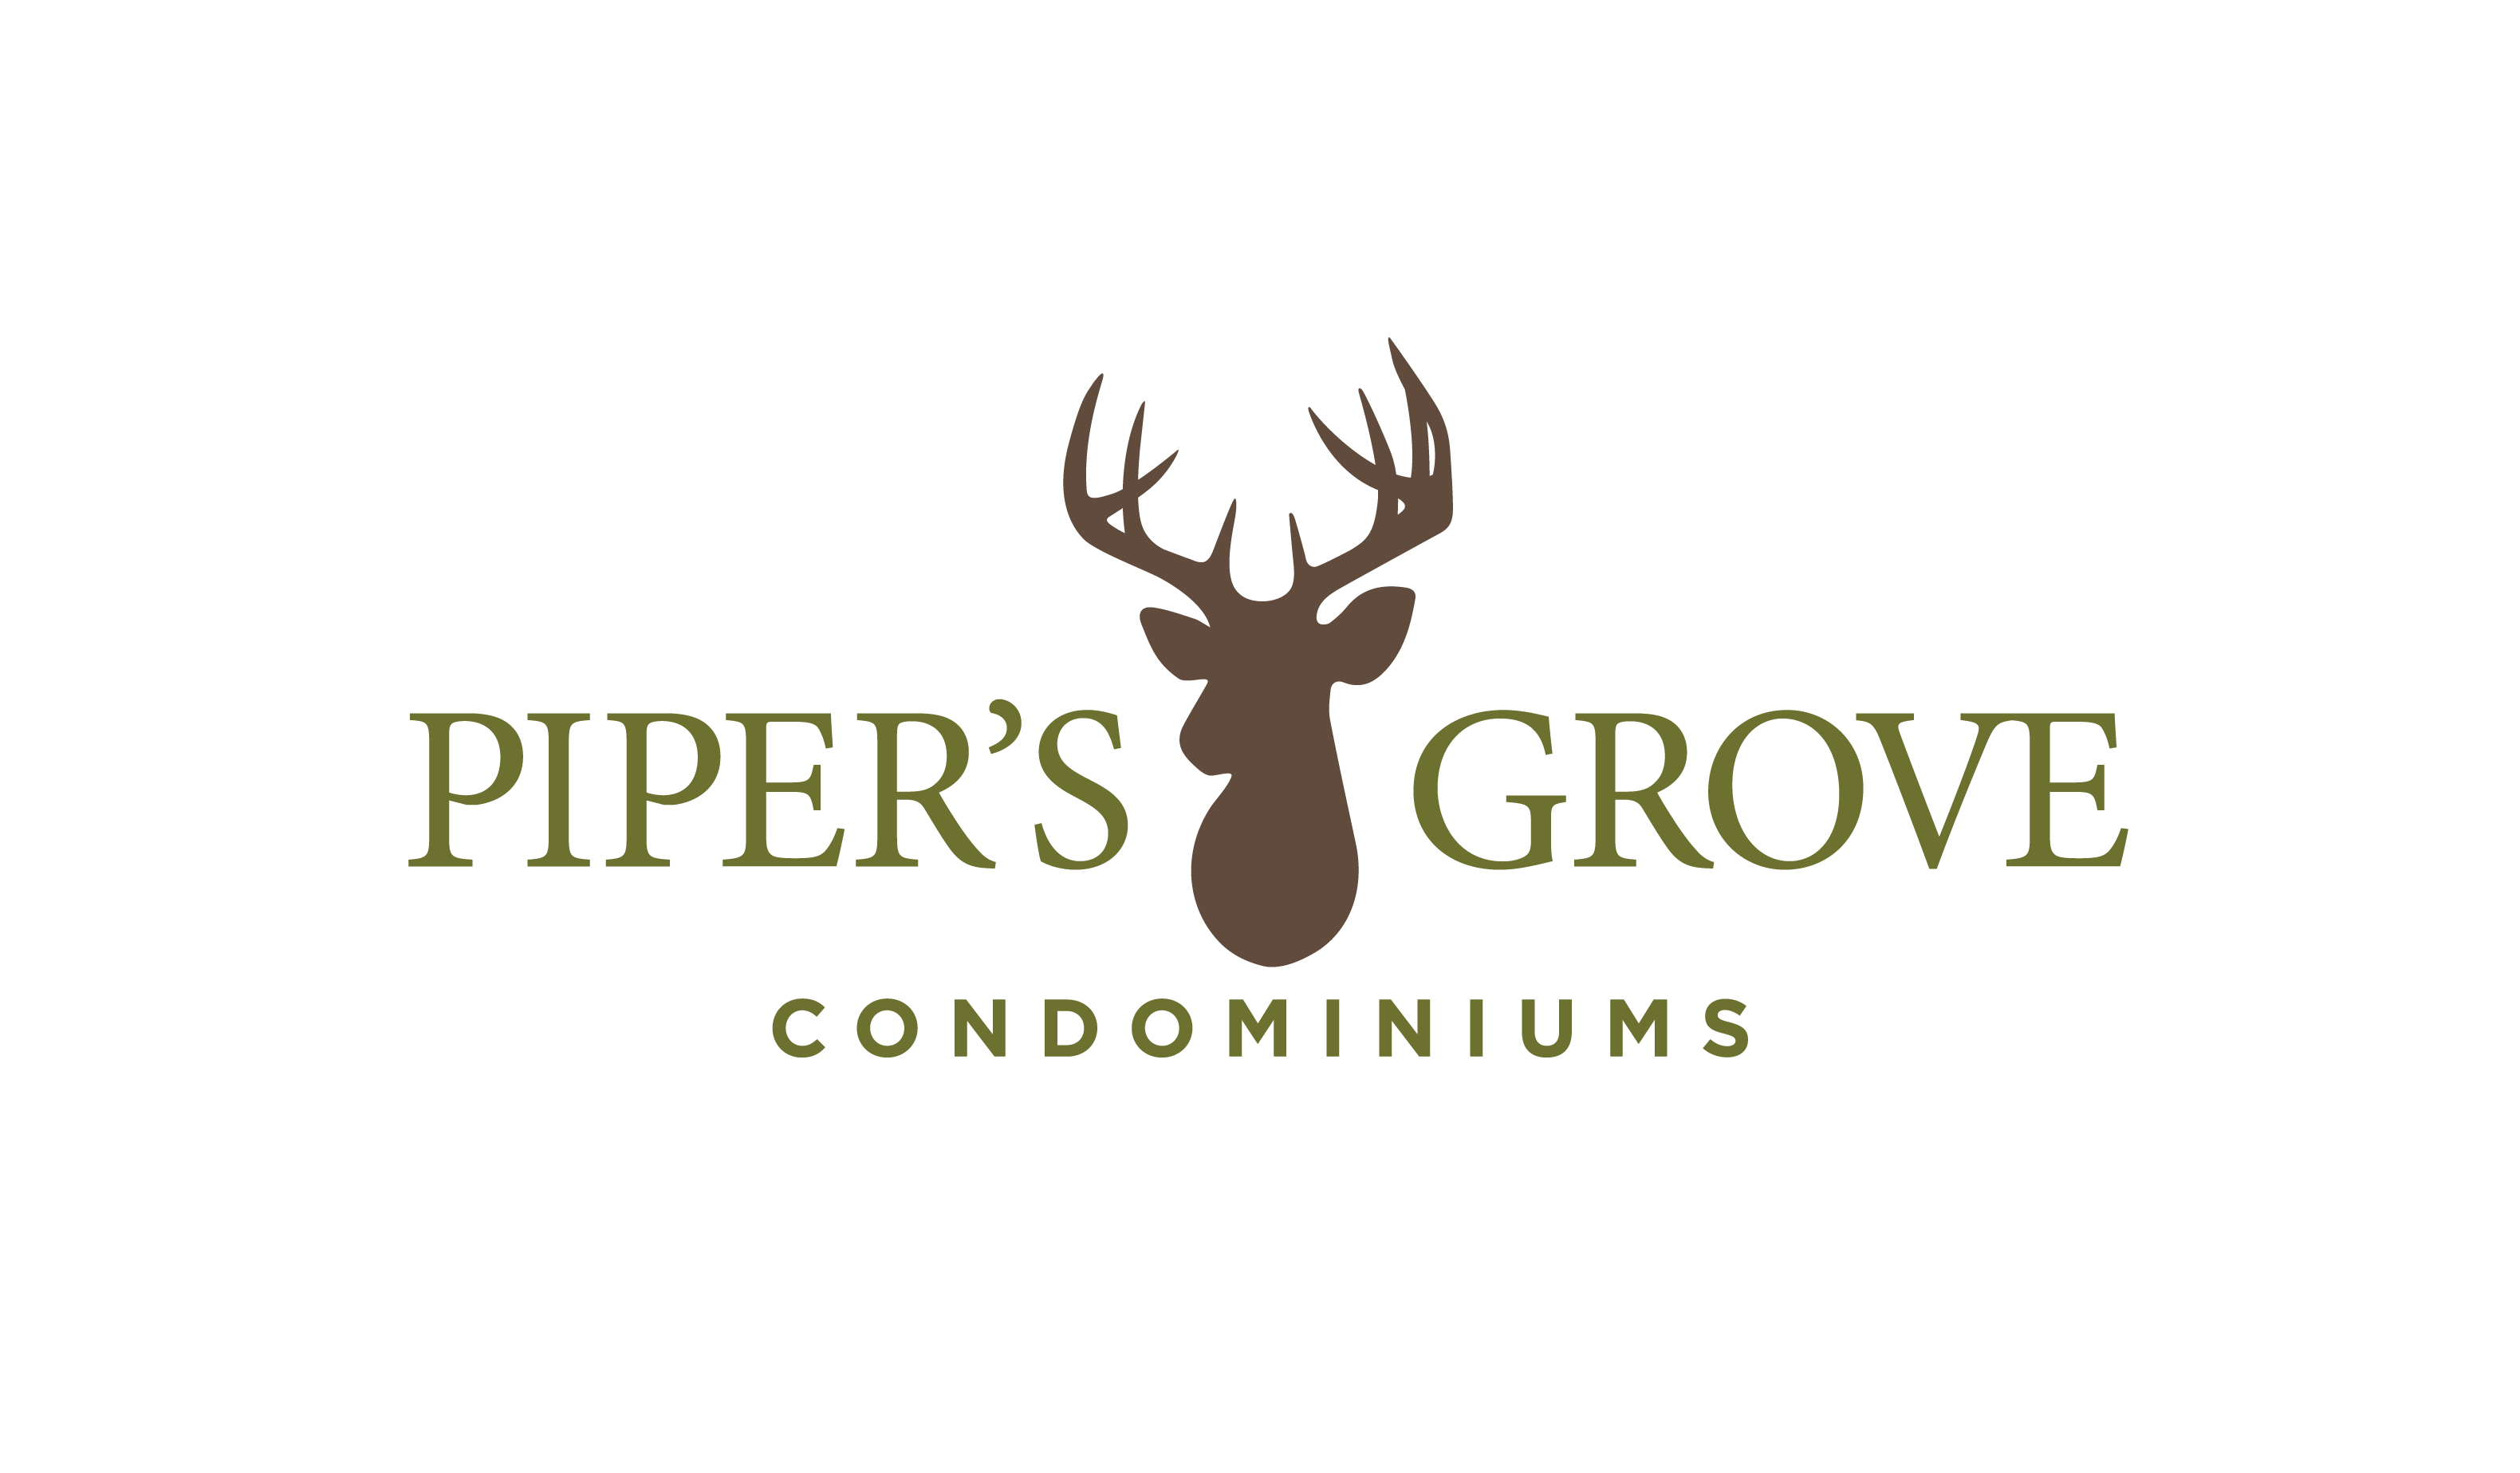 Piper's Grove Condominiums Logo